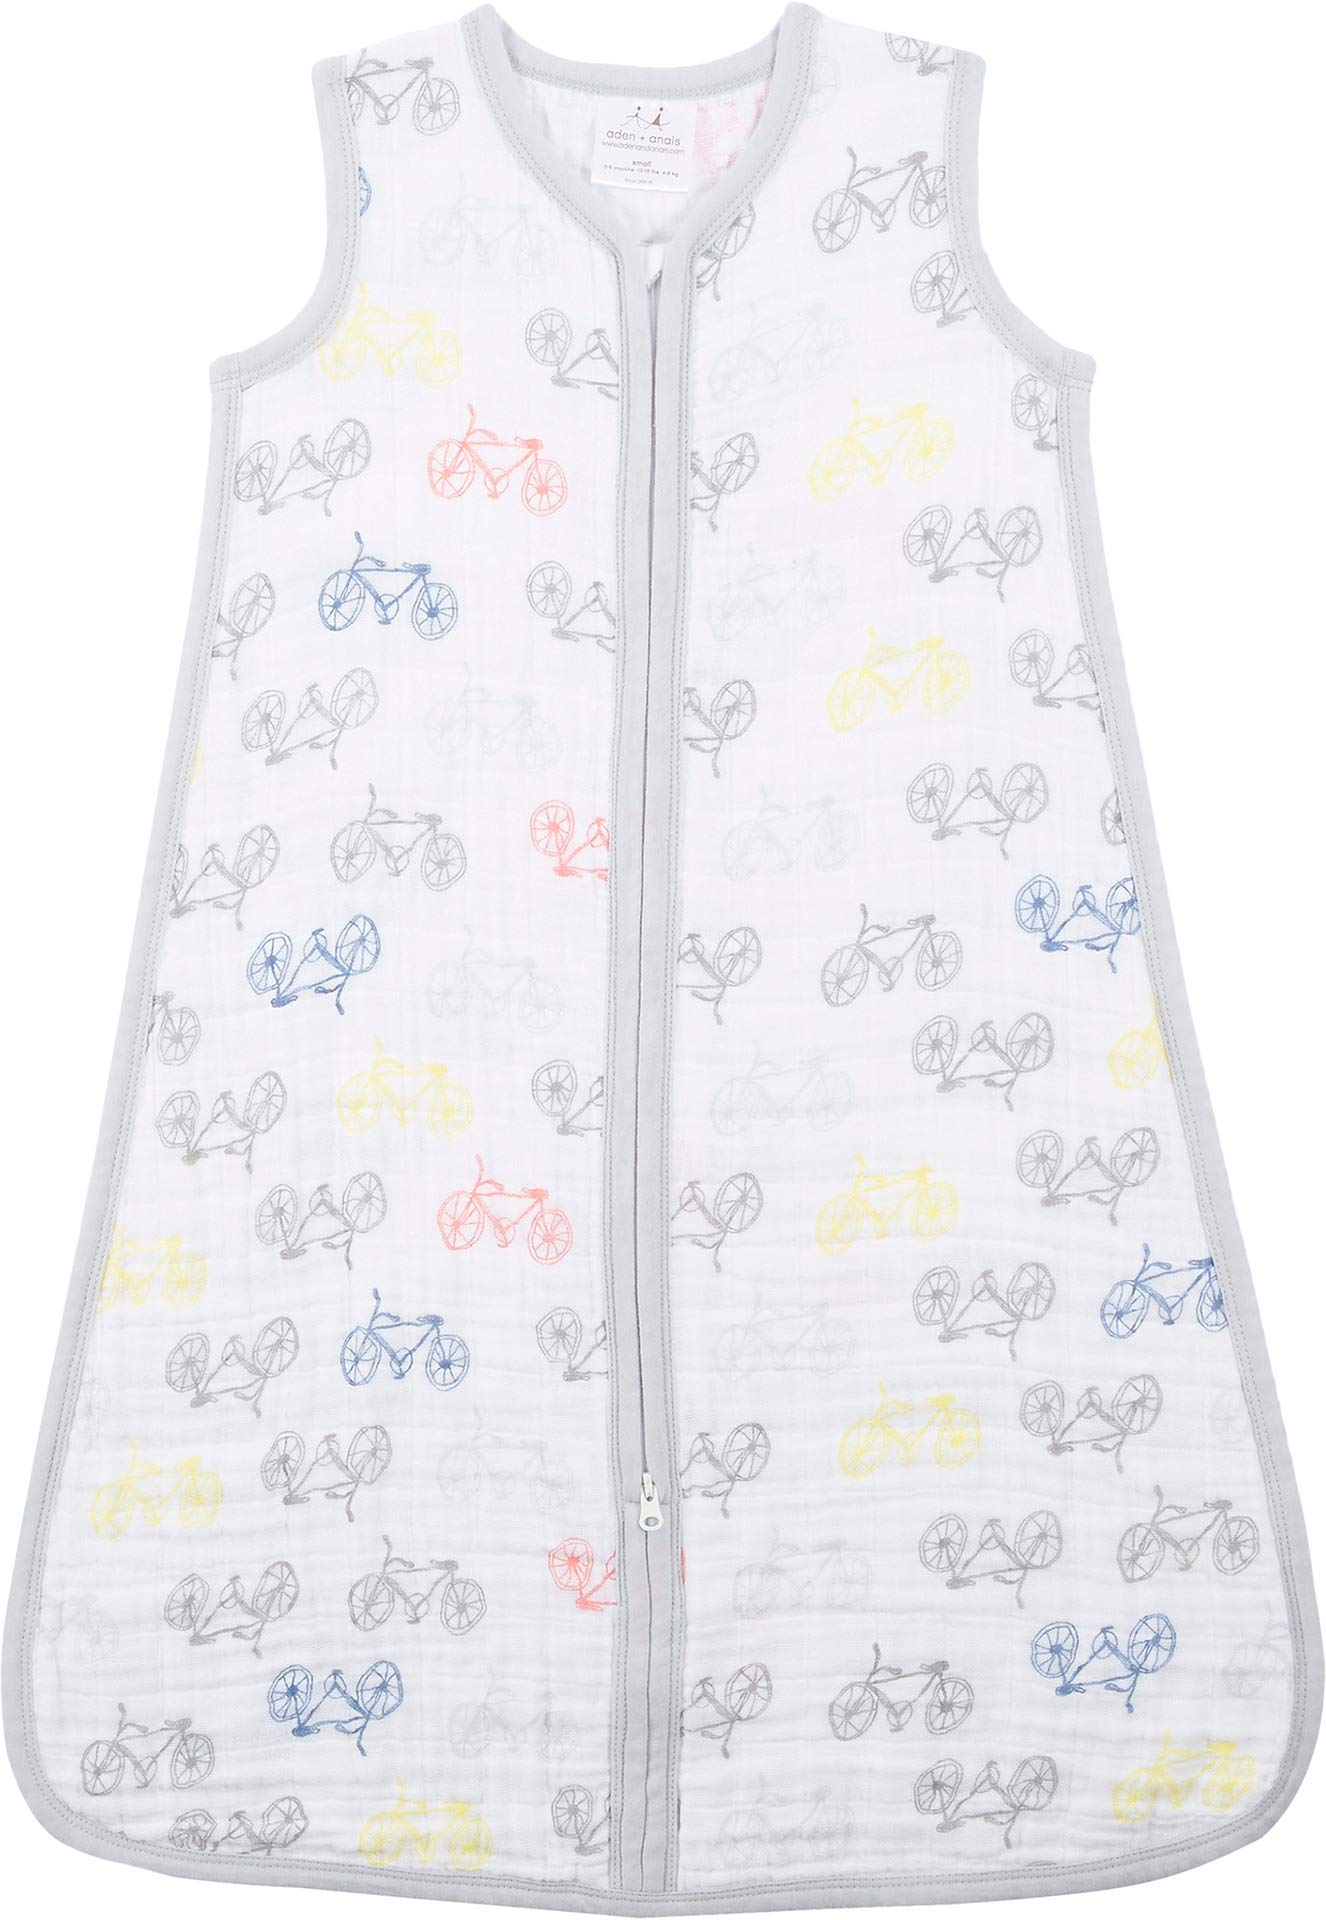 aden + anais Classic Sleeping Bag, 100% Cotton Muslin, Wearable Baby Blanket,